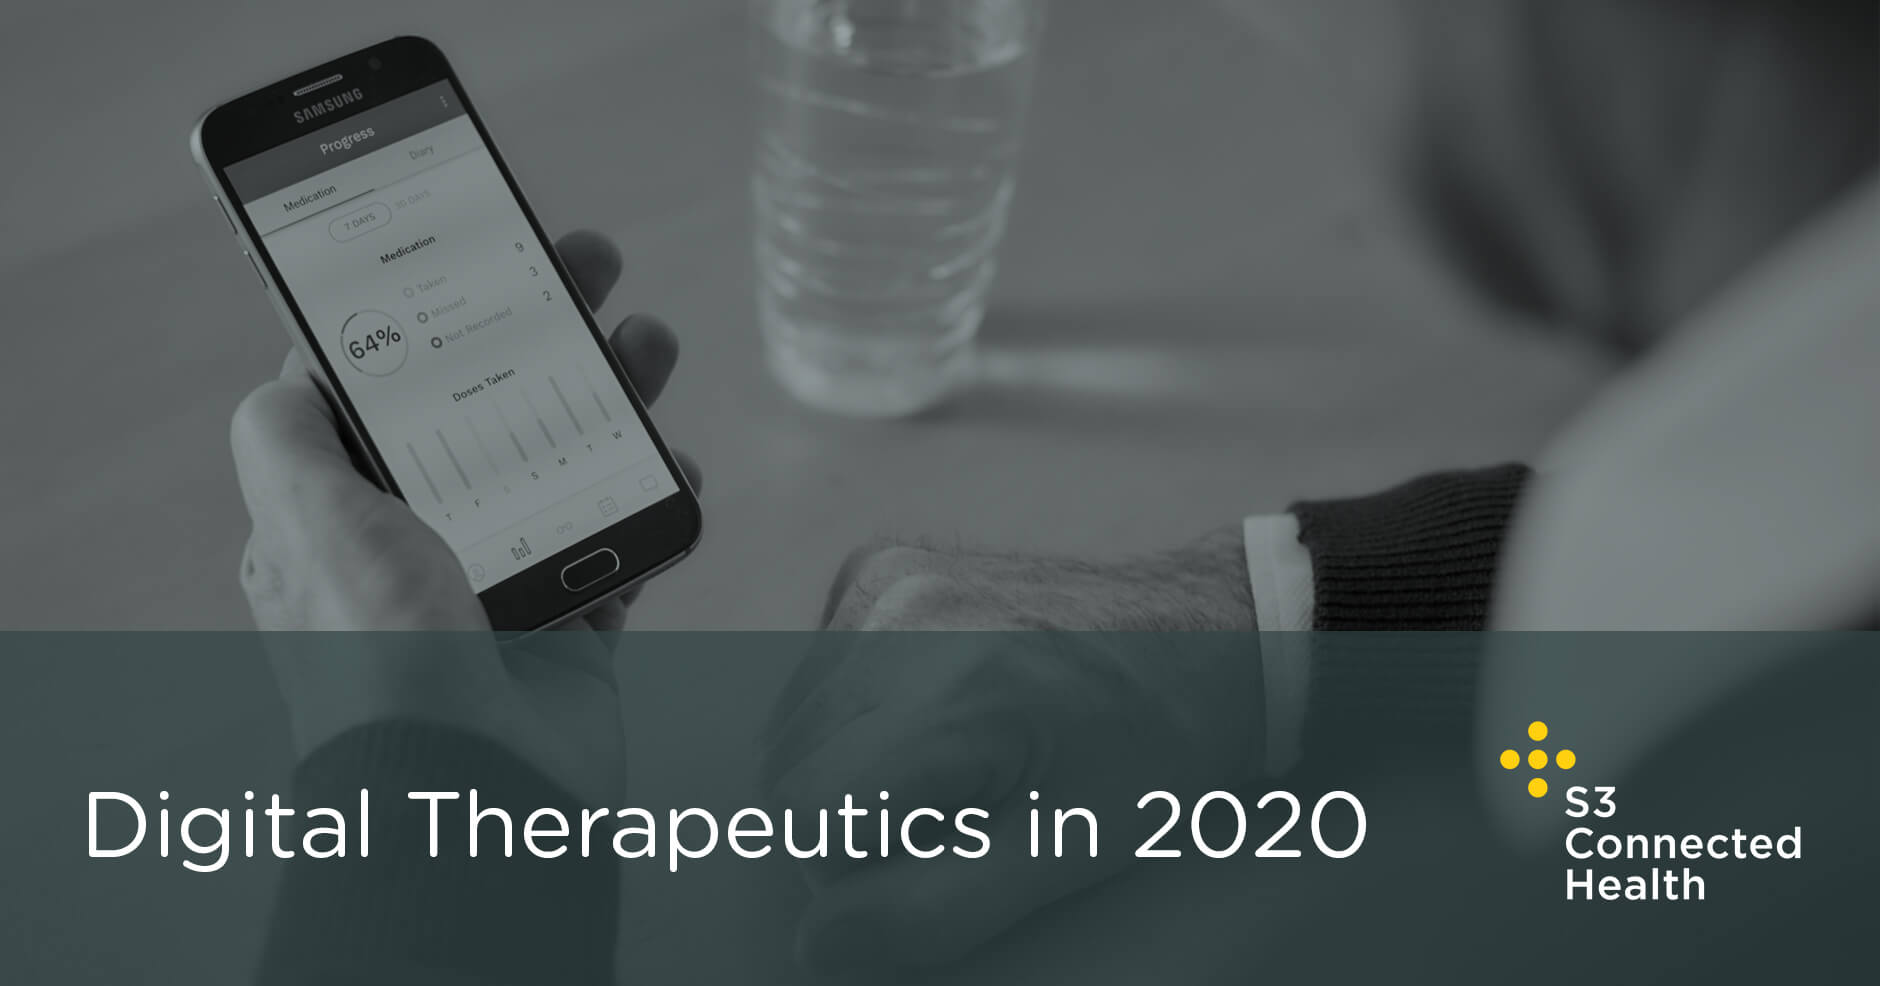 Digital Therapeutics in 2020